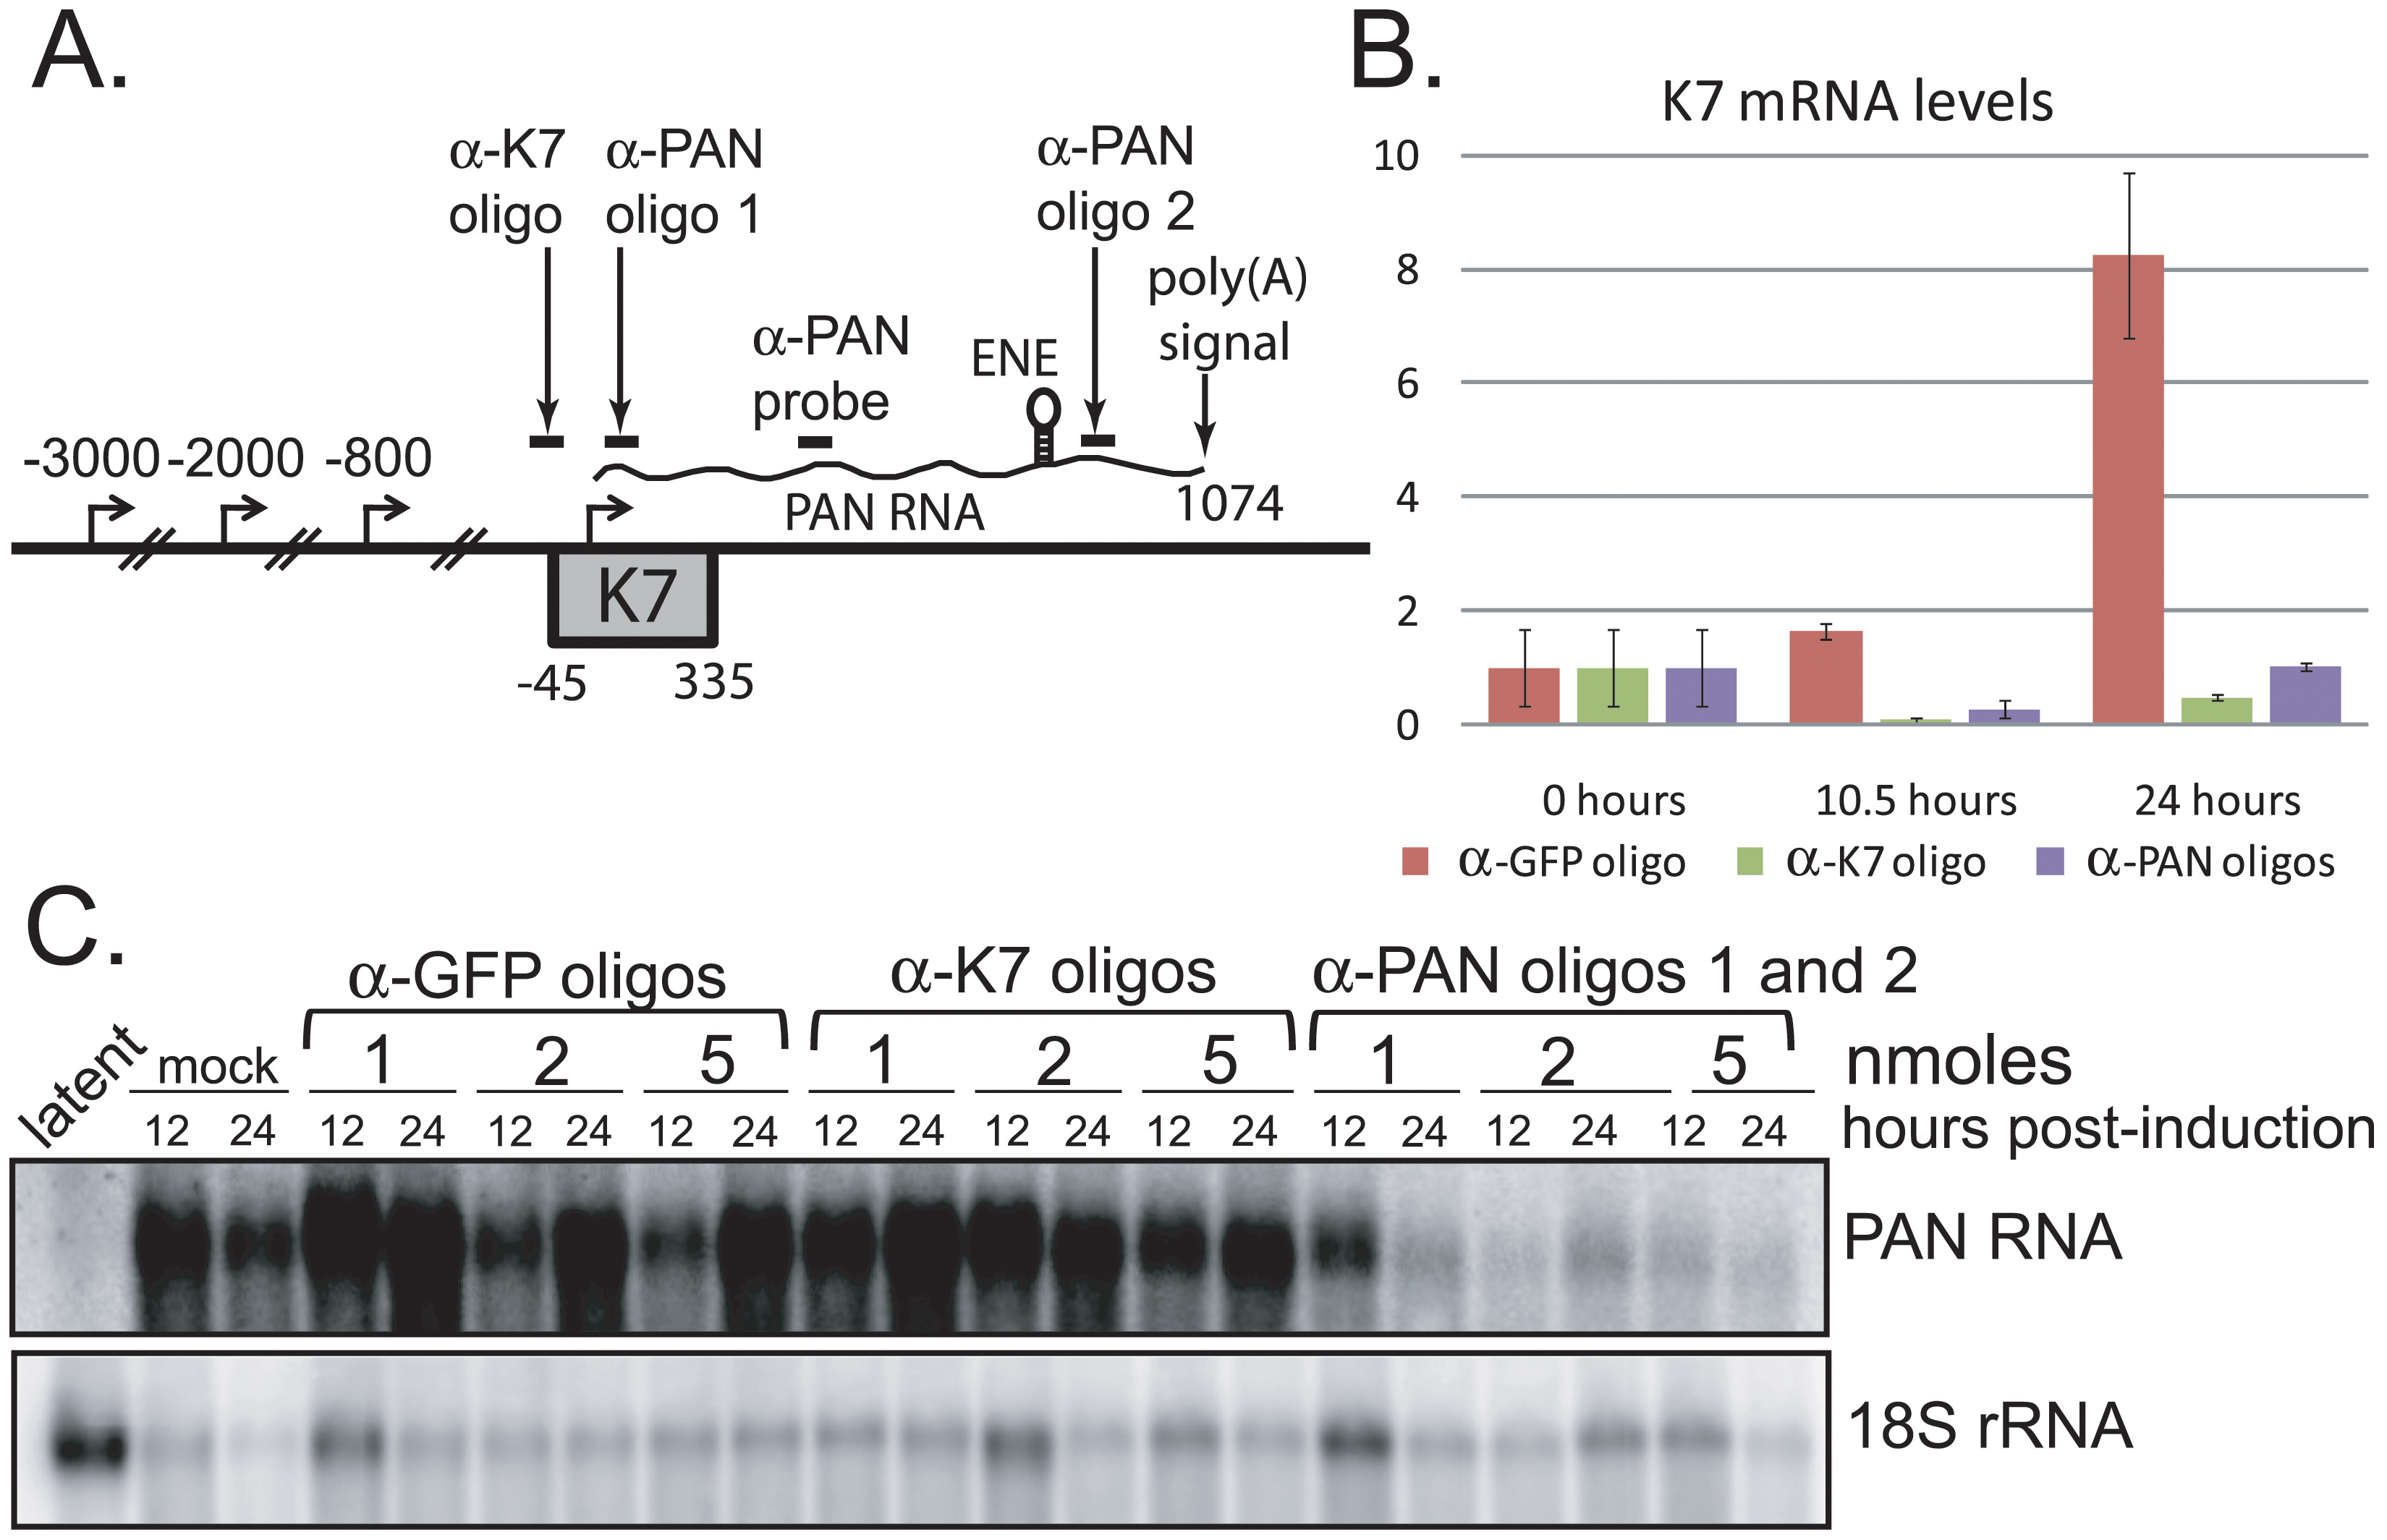 PAN RNA and K7 mRNA levels are reduced by transfection of RNase H-targeting oligonucleotides.